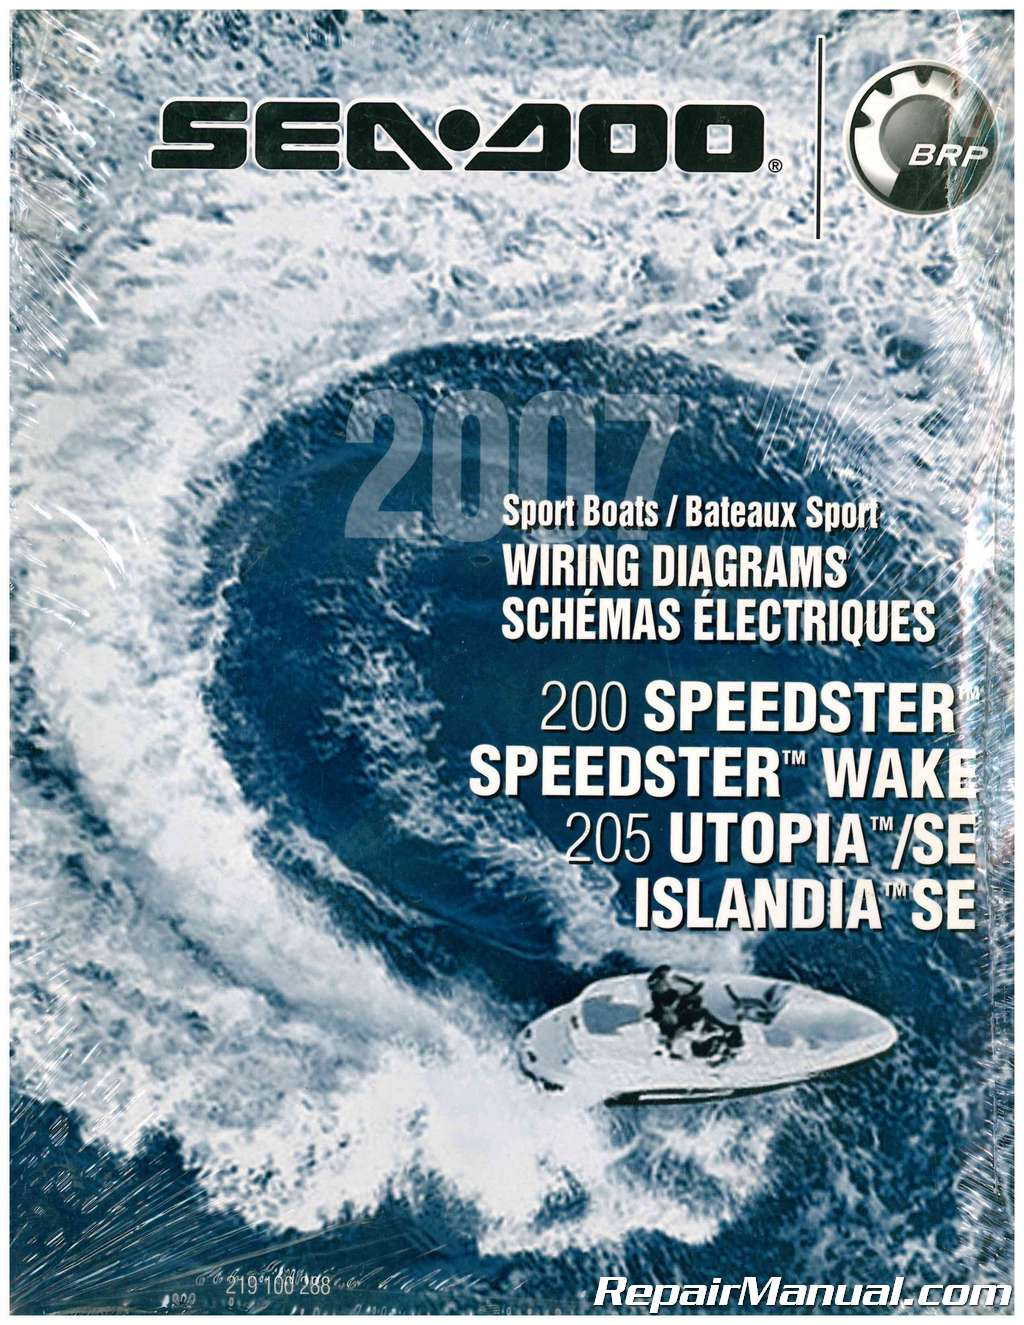 hight resolution of 2007 sea doo boat wiring diagram 200 speedster speedster wake 205 utopia se islandia se jpg